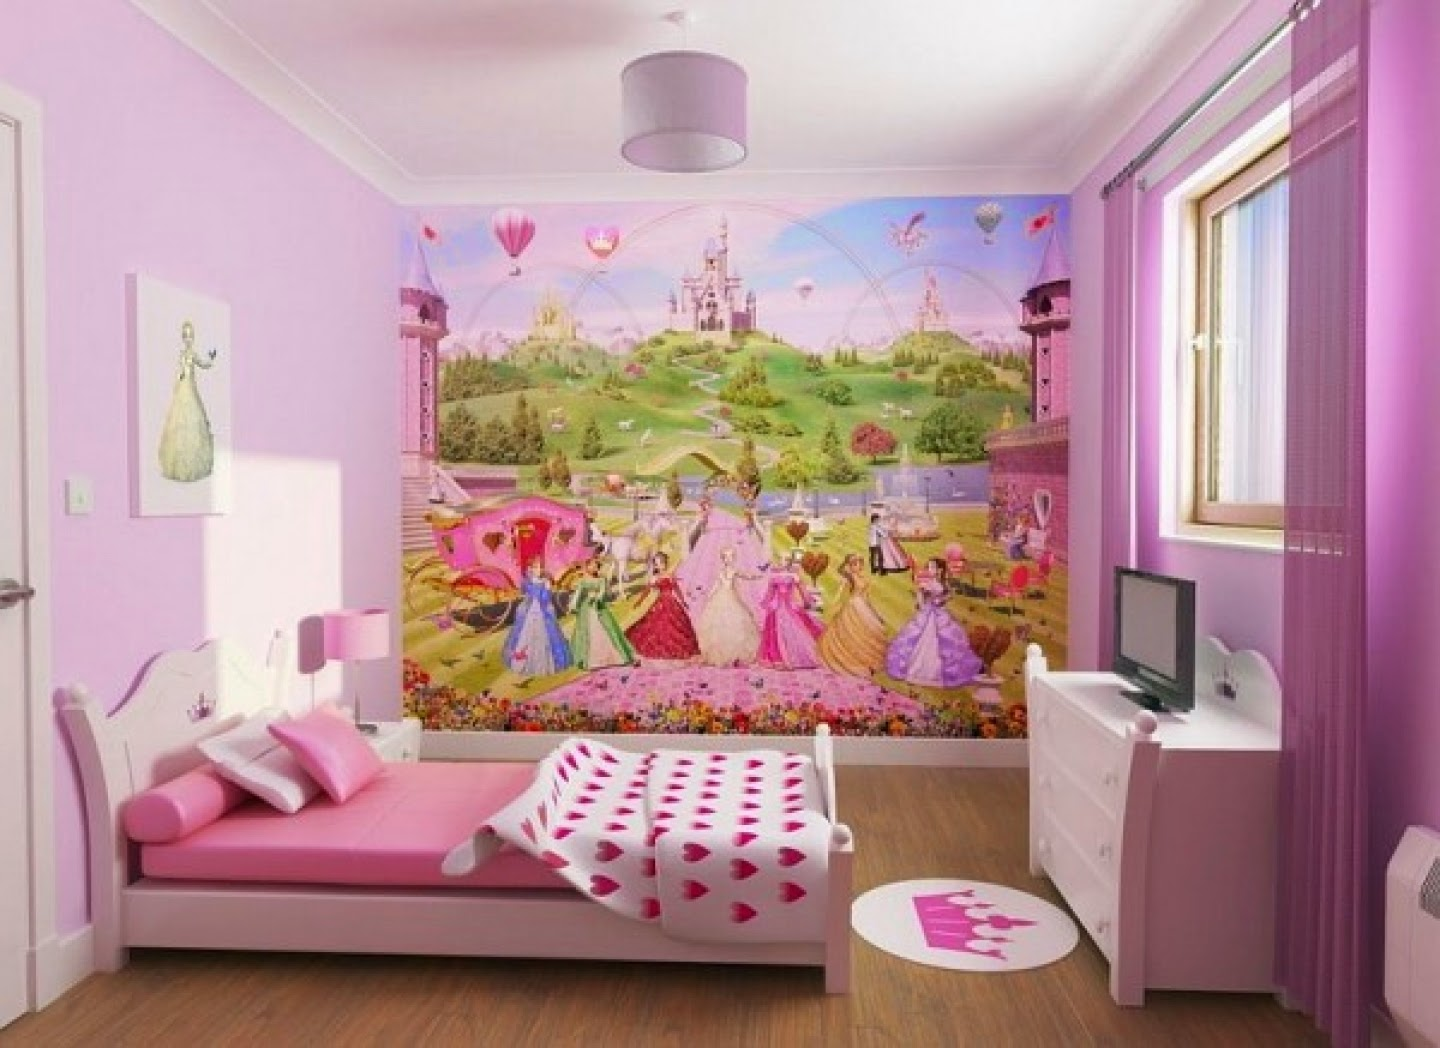 #20 Teenage Girls Girl Rooms Room Wall Decals Color Ideas Teenage Girls Girl  Rooms Room ...